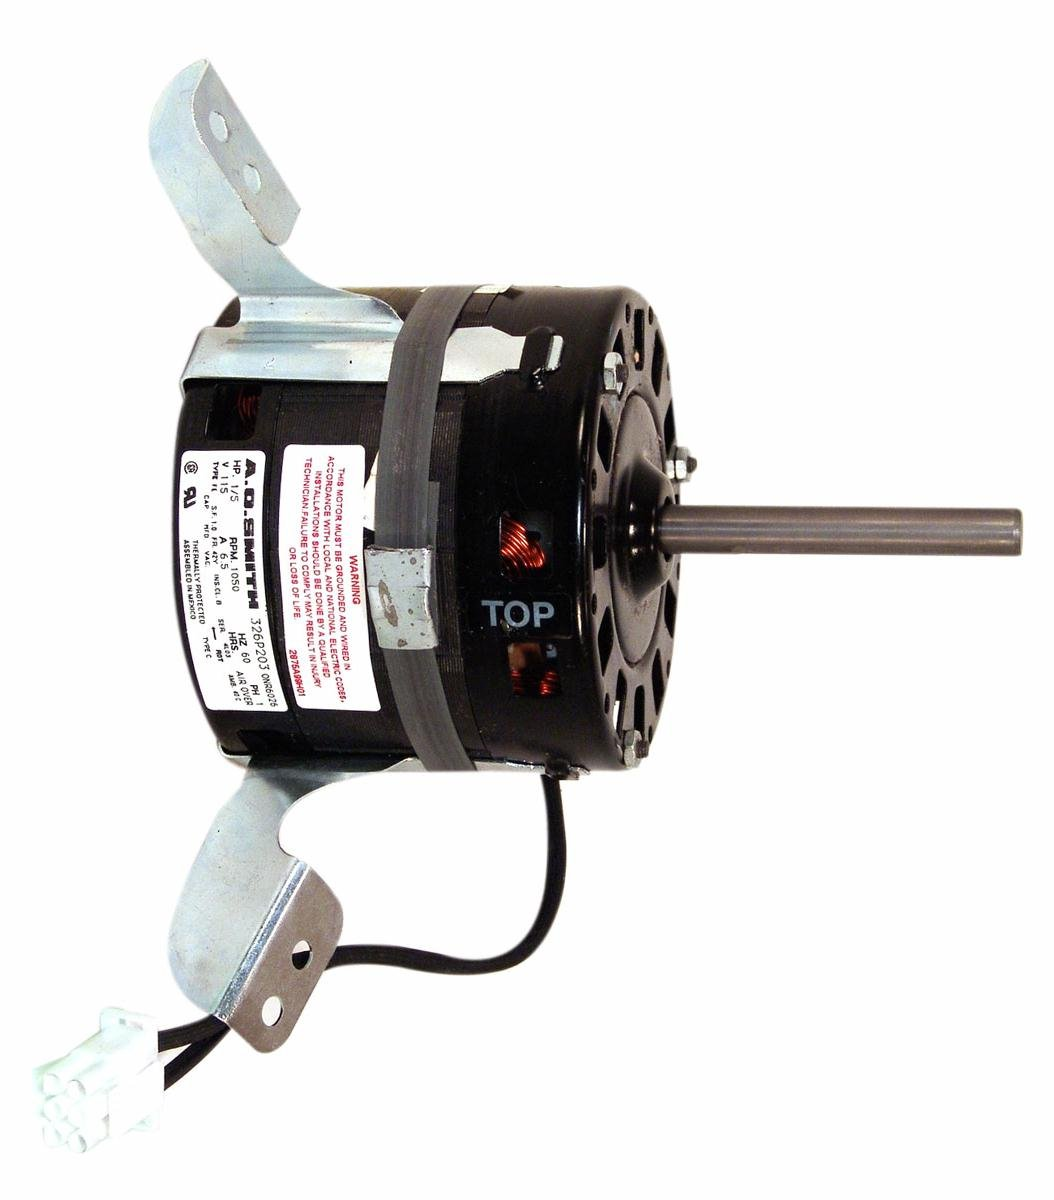 Ao Smith Onr6406 1 8 Hp 1050 Rpm Speed 42y Frame Ccwle Blower Motor Wiring Diagram Rotation 2 Inch By 3 7 Shaft Oem Direct Replacement Electric Fan Motors Amazon